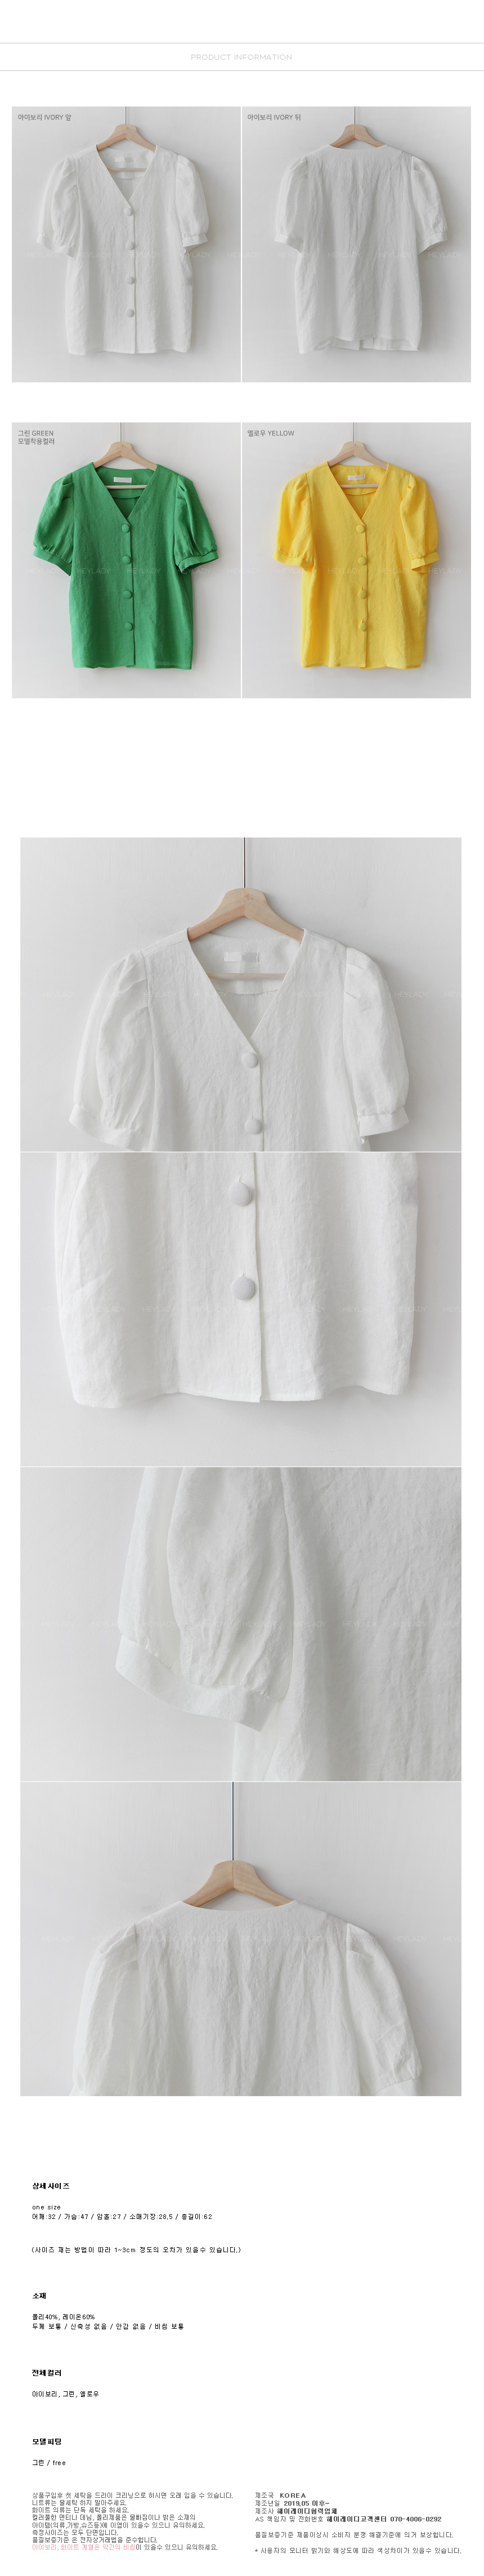 Ans button blouse